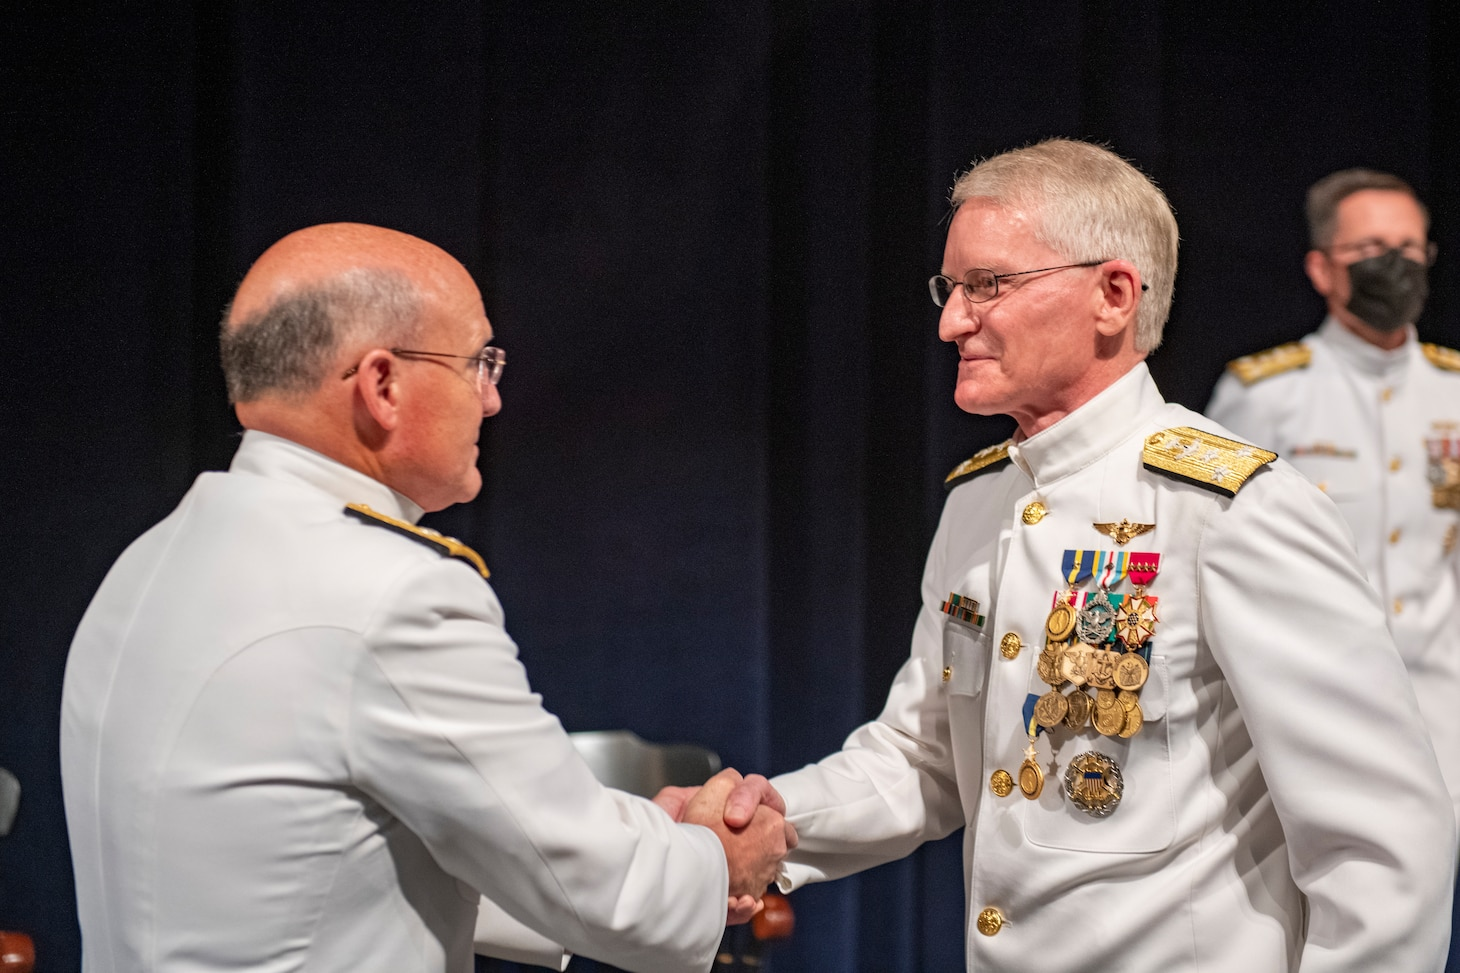 Chief of Naval Operations Adm. Mike Gilday, left, shakes the hand of Vice Adm. John G. Hannink during a change of office ceremony at the U.S. Naval Academy.